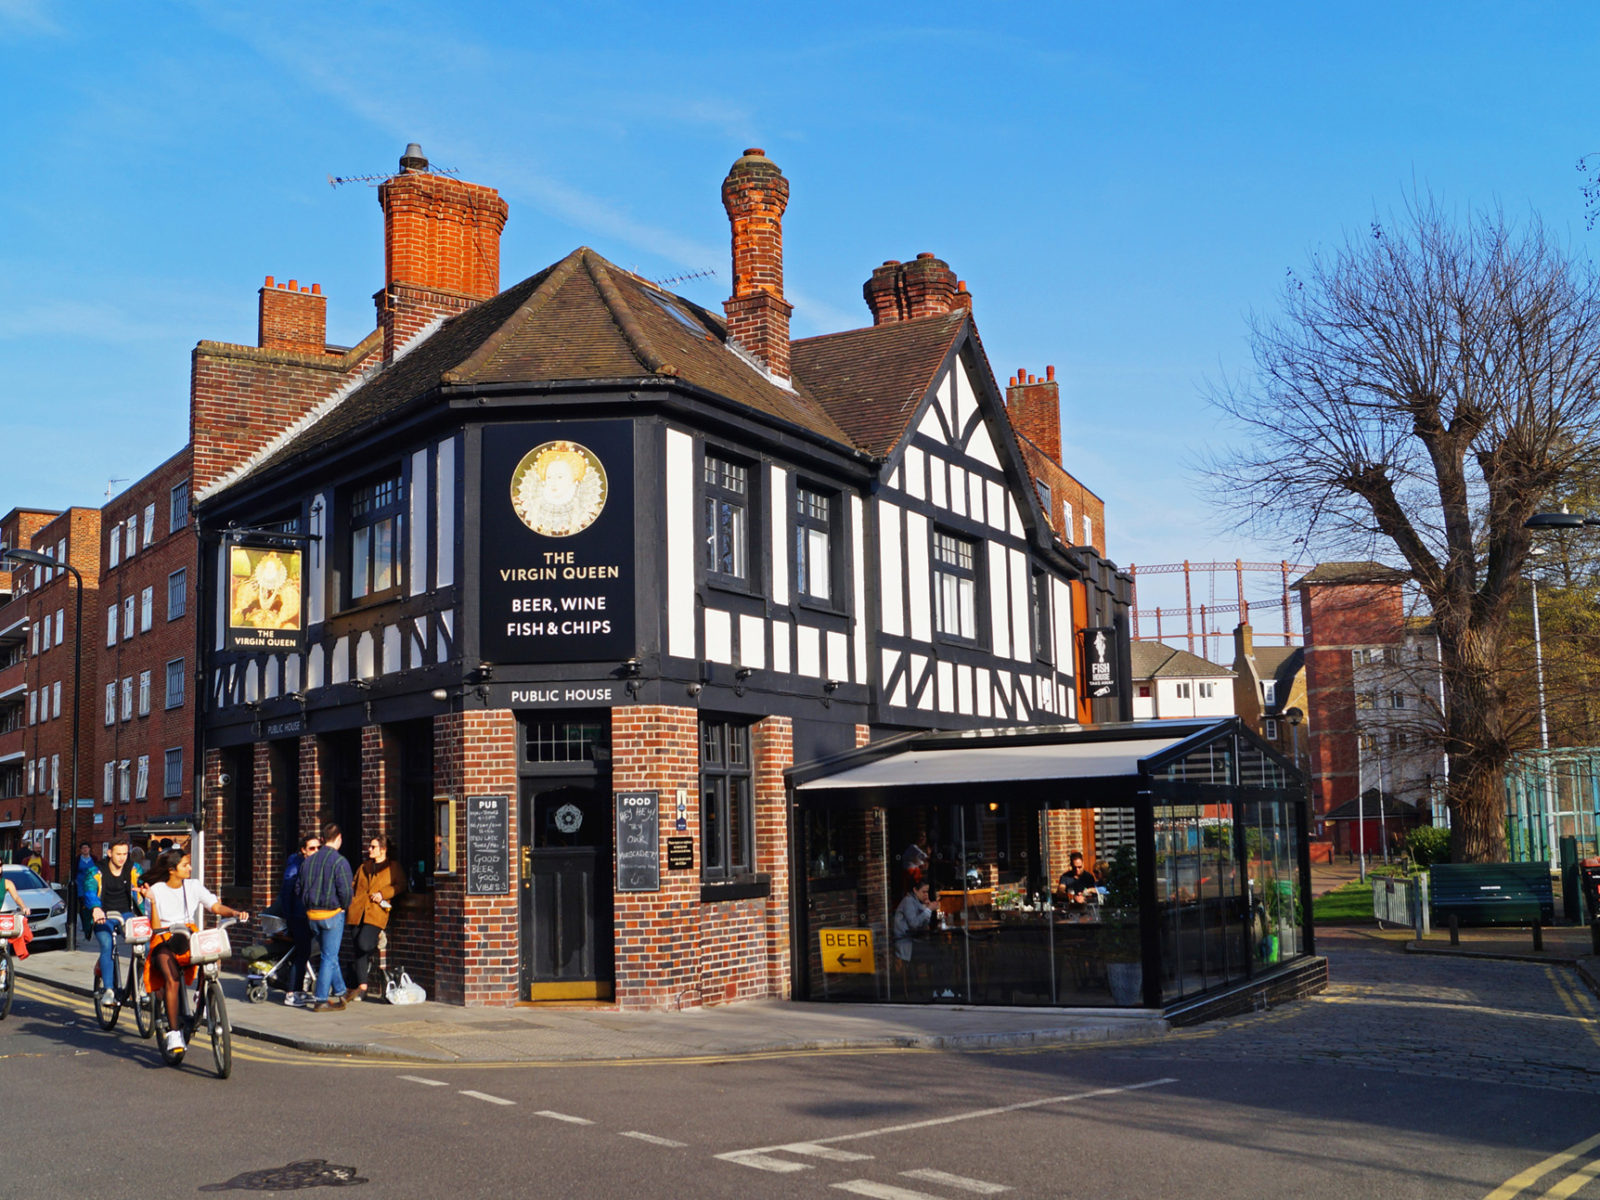 Virgin Queen Pub on a beautiful sunny day